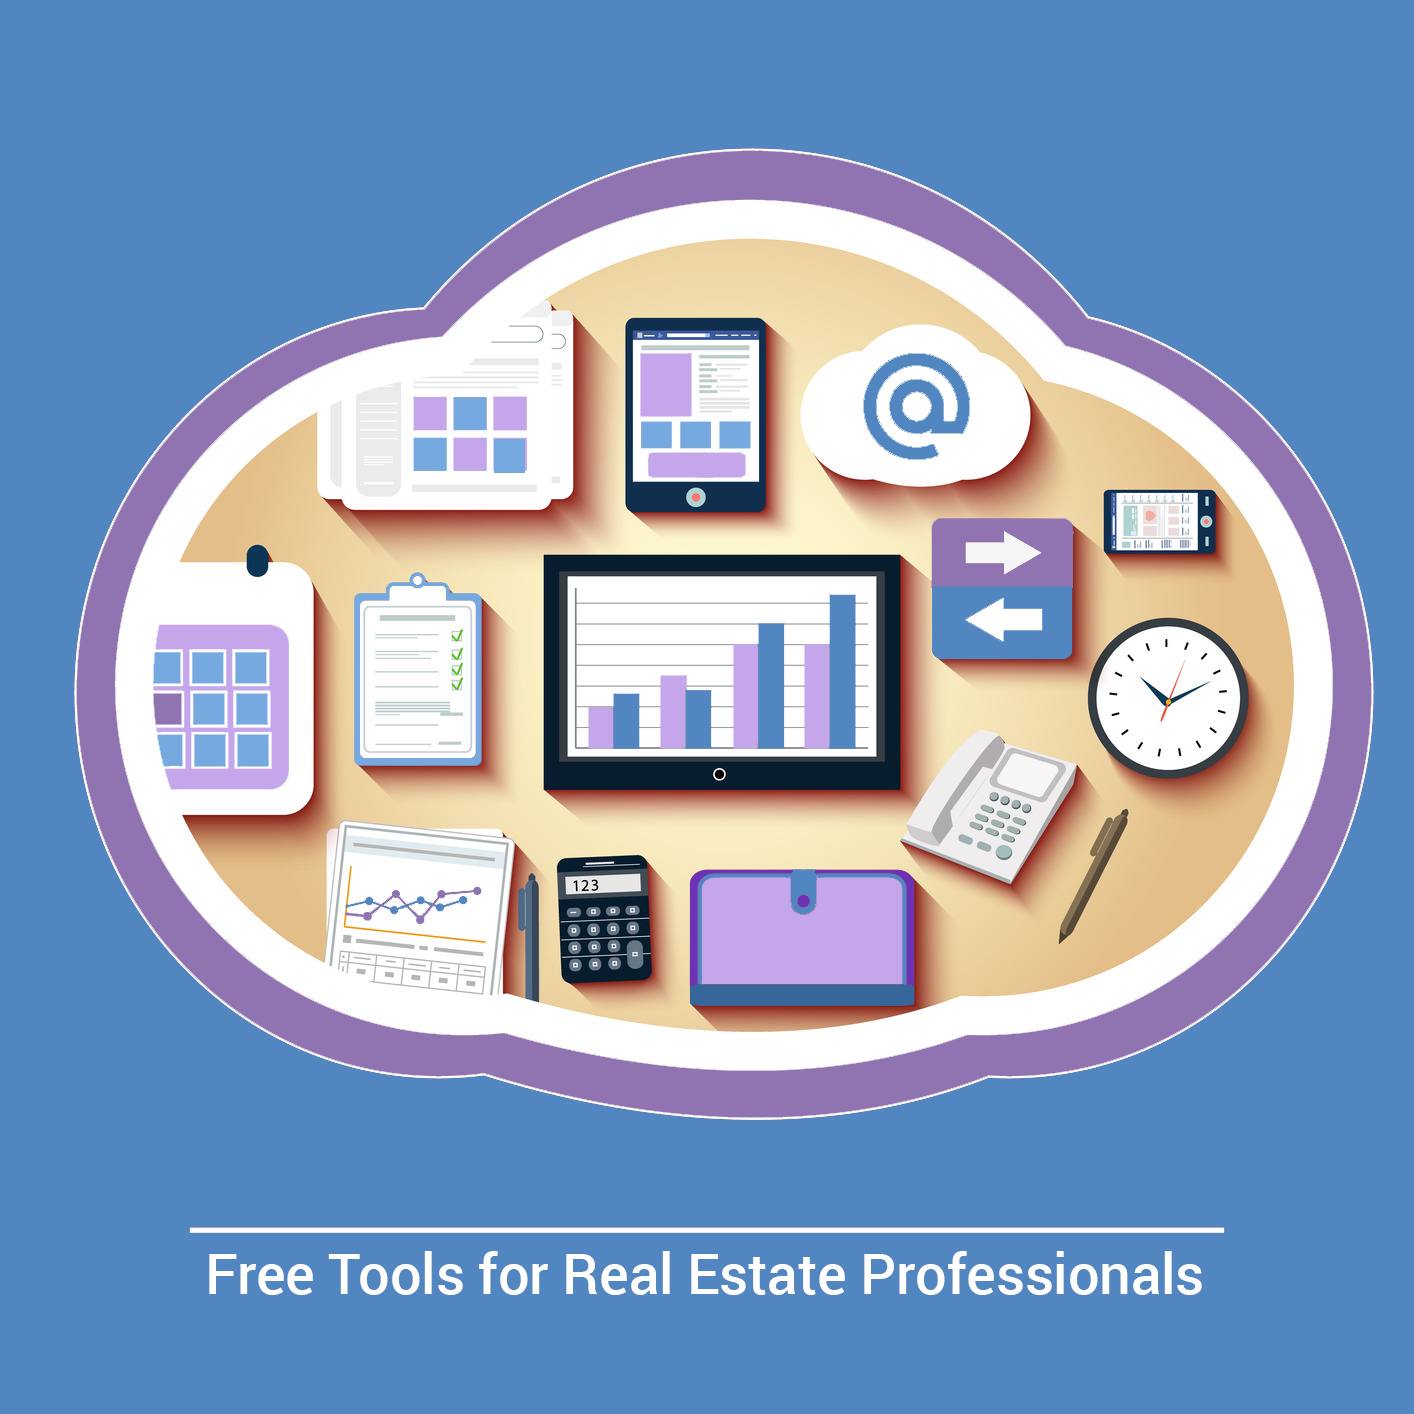 10 Free Real Estate Tools to Grow Your Business